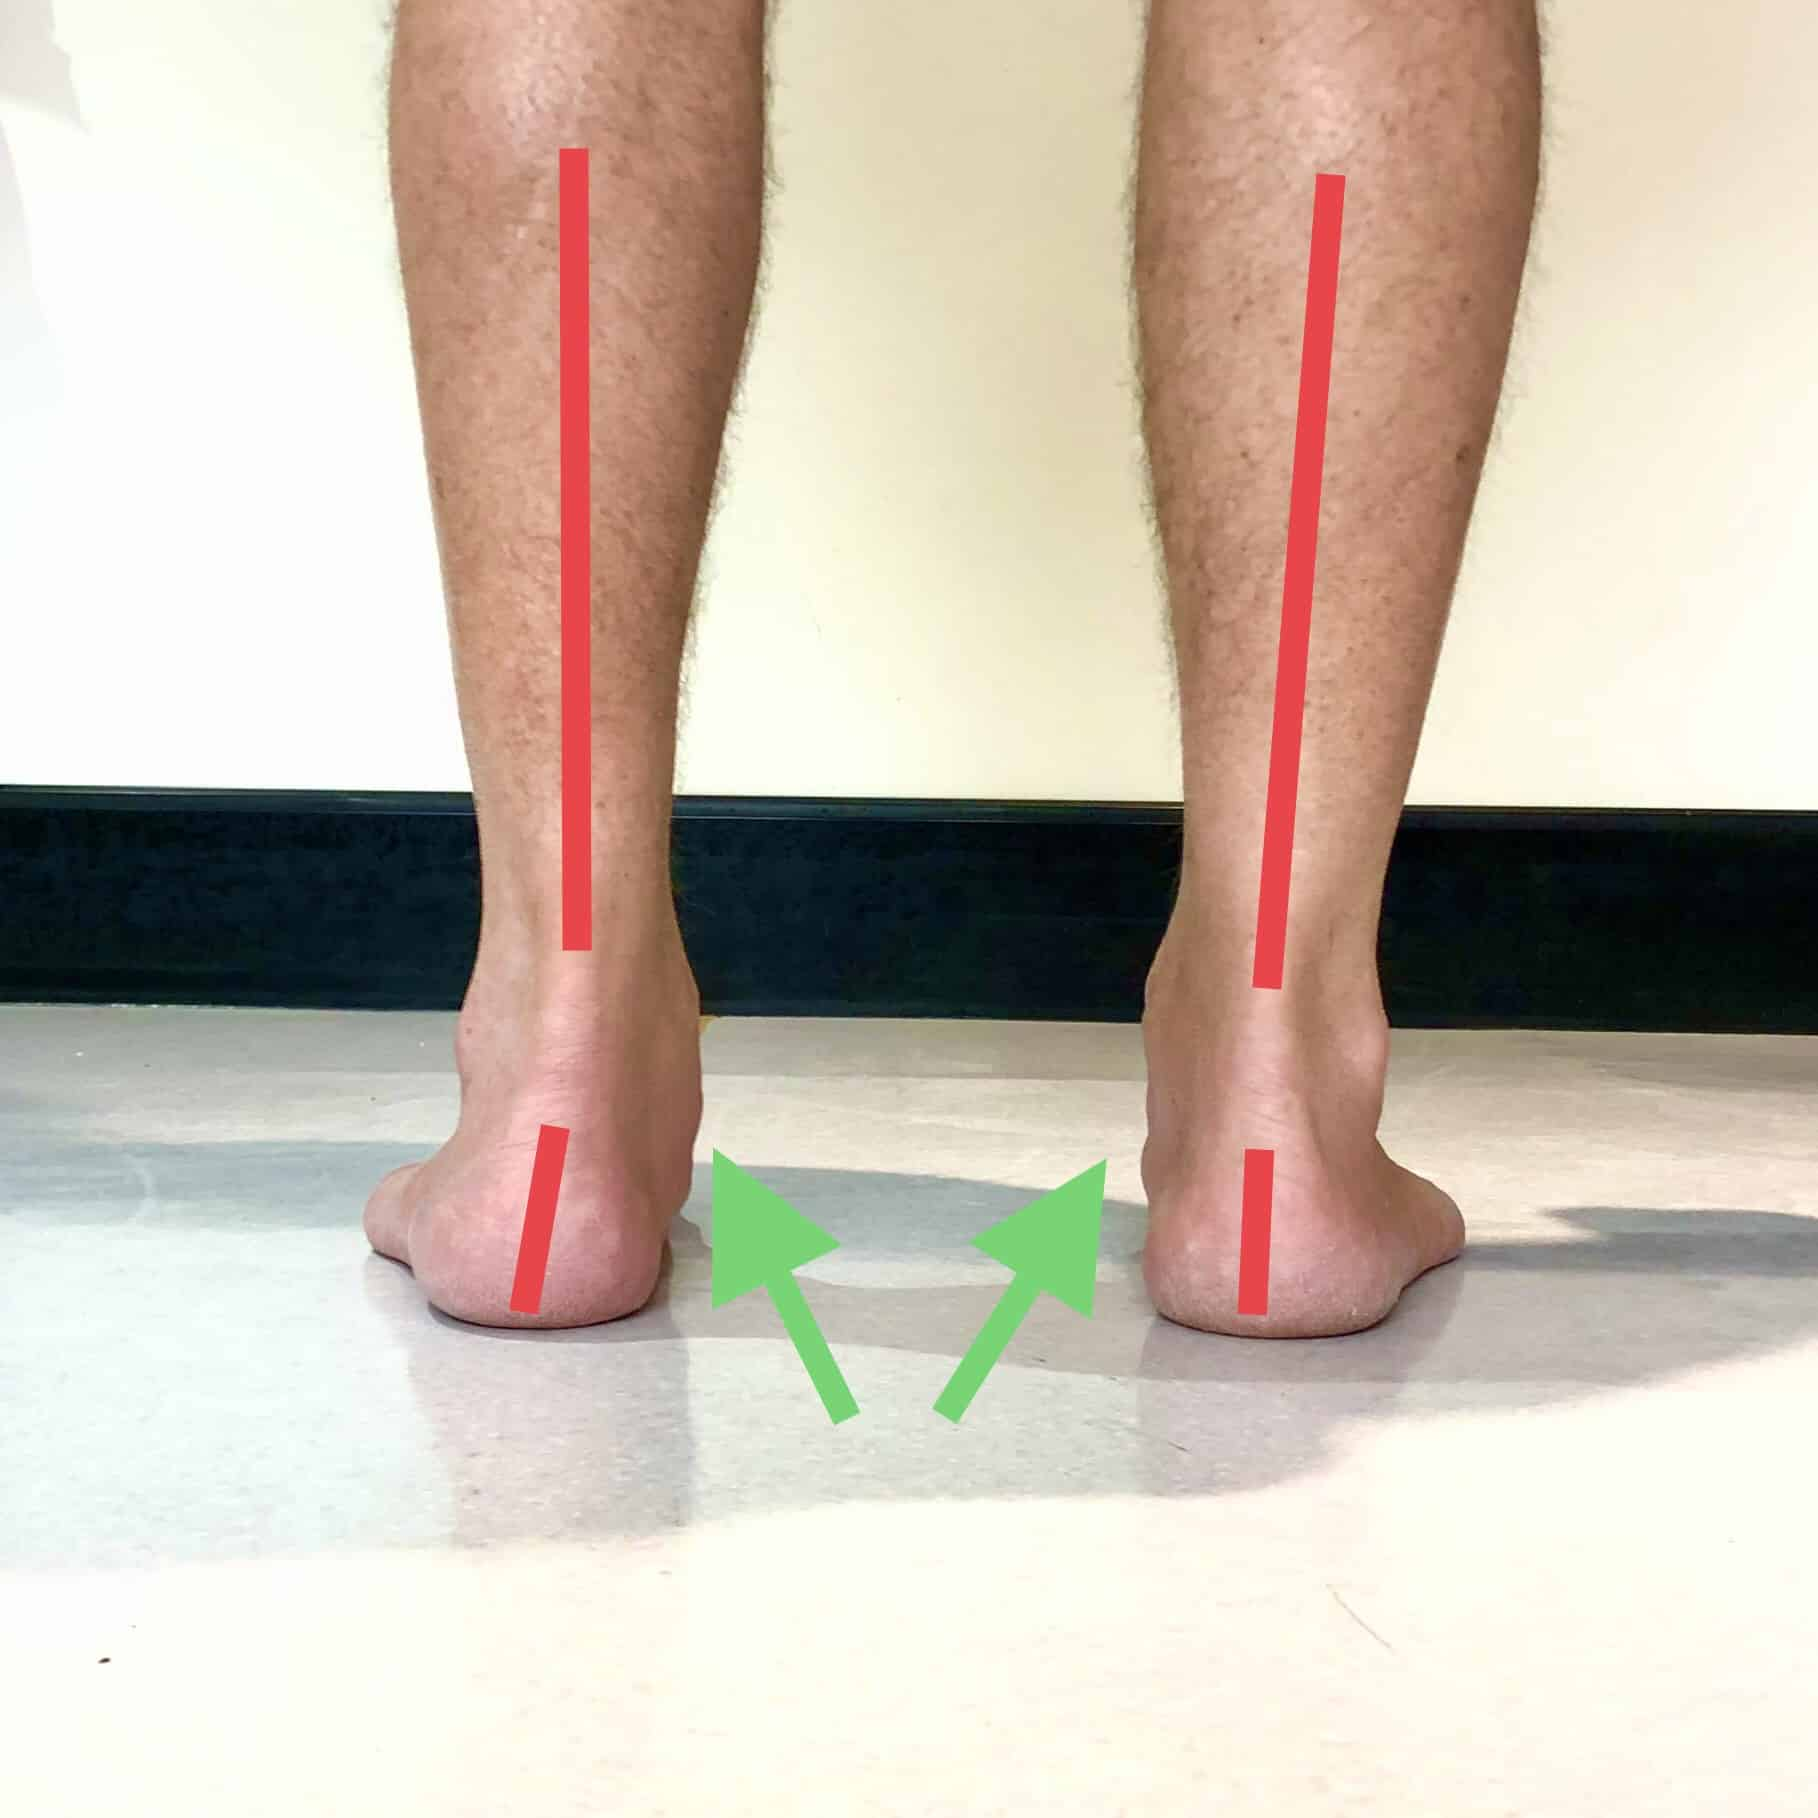 What do Fallen Arches or Flat Feet look like?